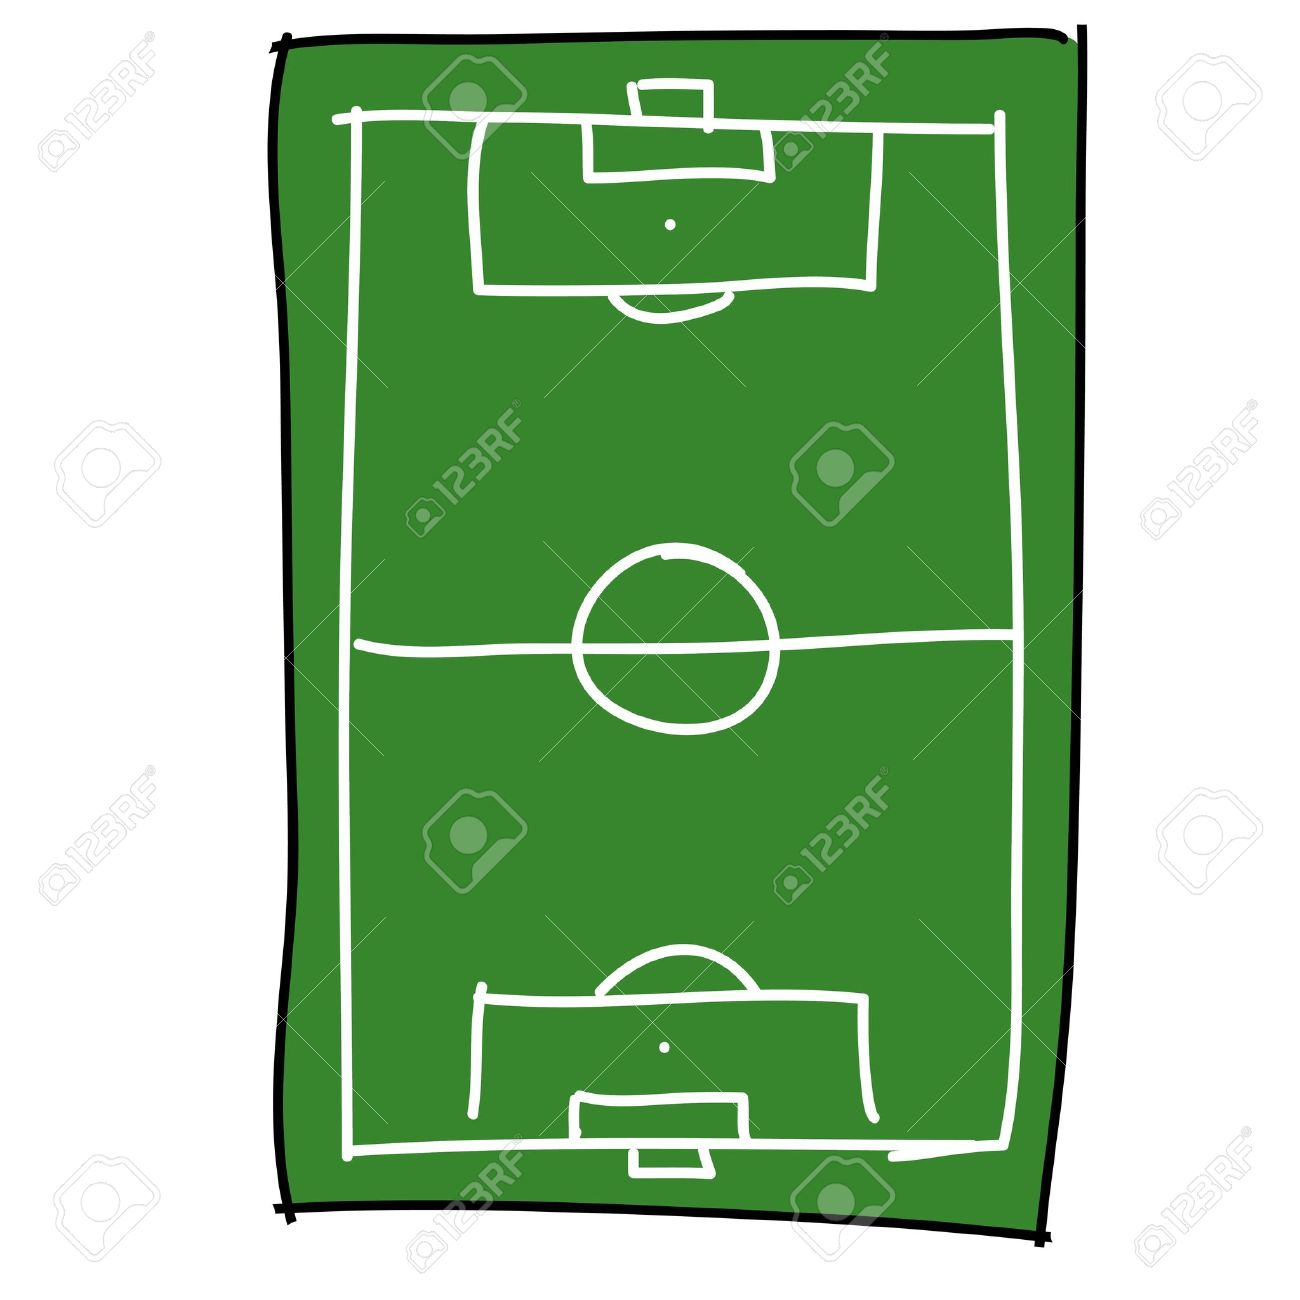 soccer field cartoon draw royalty free cliparts vectors and stock rh 123rf com football field vector art free football field clipart vector